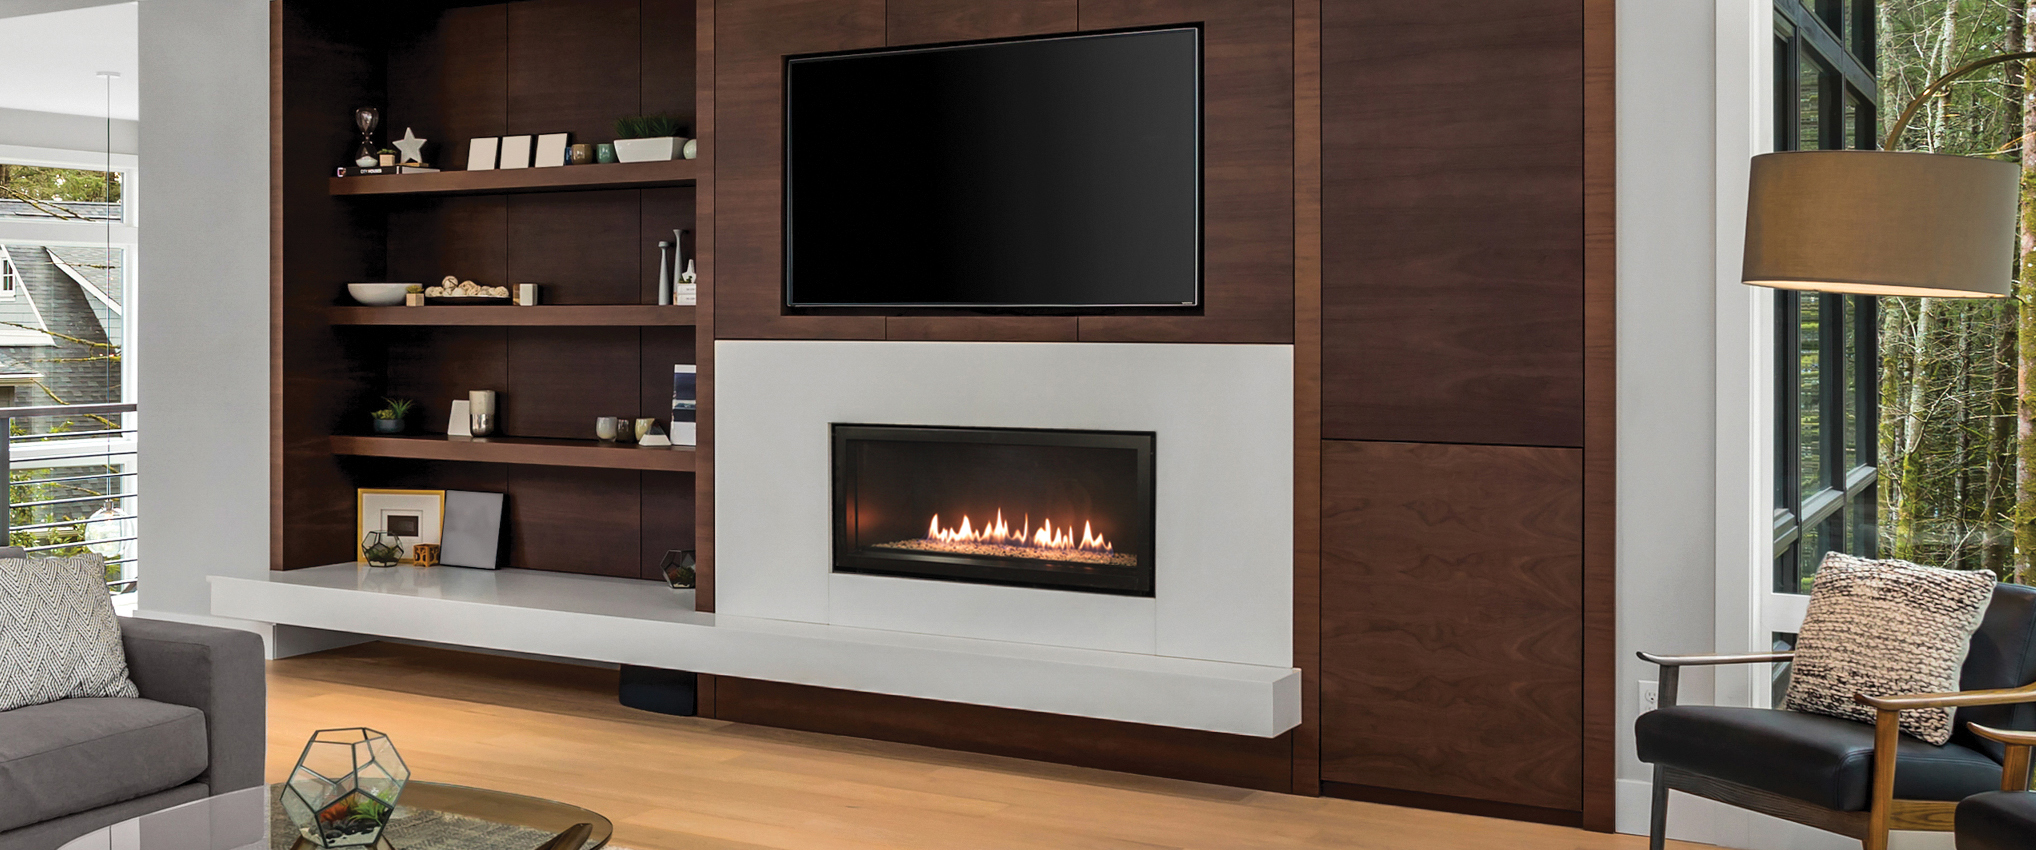 White Mountain Hearth Dvll36bp92 36 Boulevard Contemporary Zero Clearance Direct Vent Fireplace Choice Of Fuel